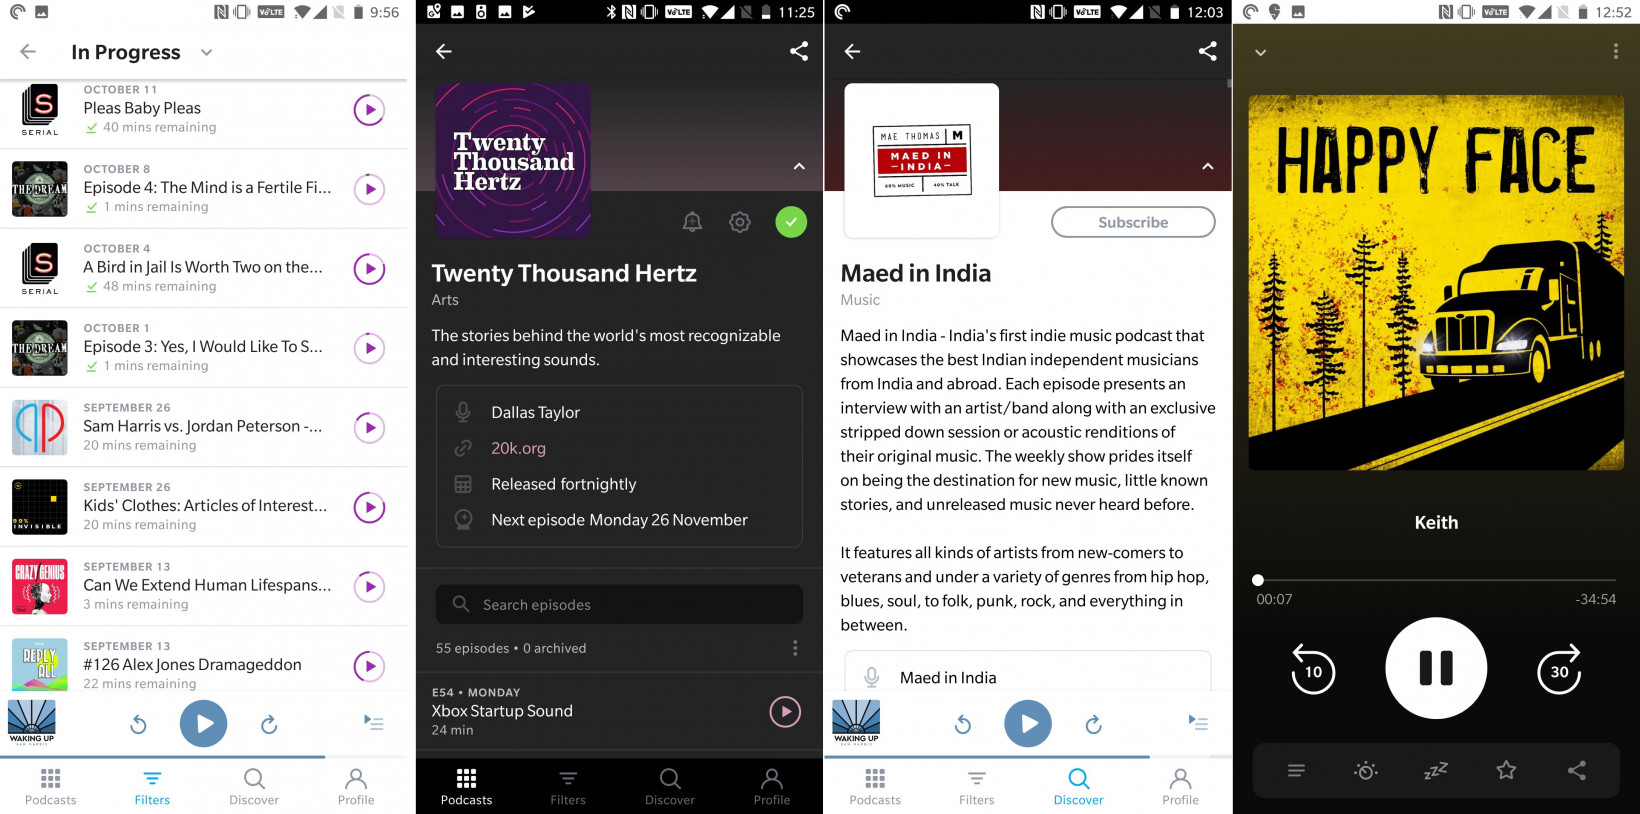 It's now a lot easier to browse through podcasts and navigate around the Pocket Casts interface